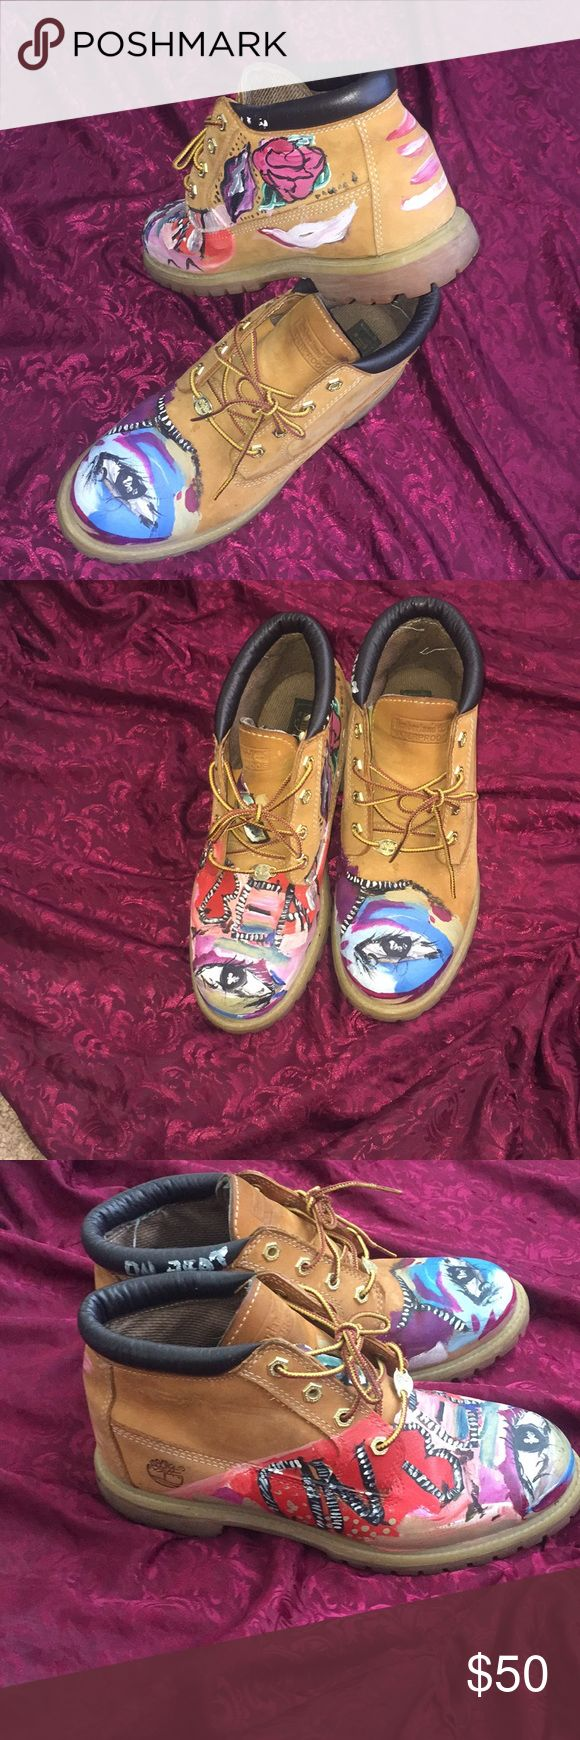 Hand Painted Women's Low Top Timberland Boots Hand Painted Custom Low Top Women's Timberland Boots Size 10 Timberland Shoes Winter & Rain Boots